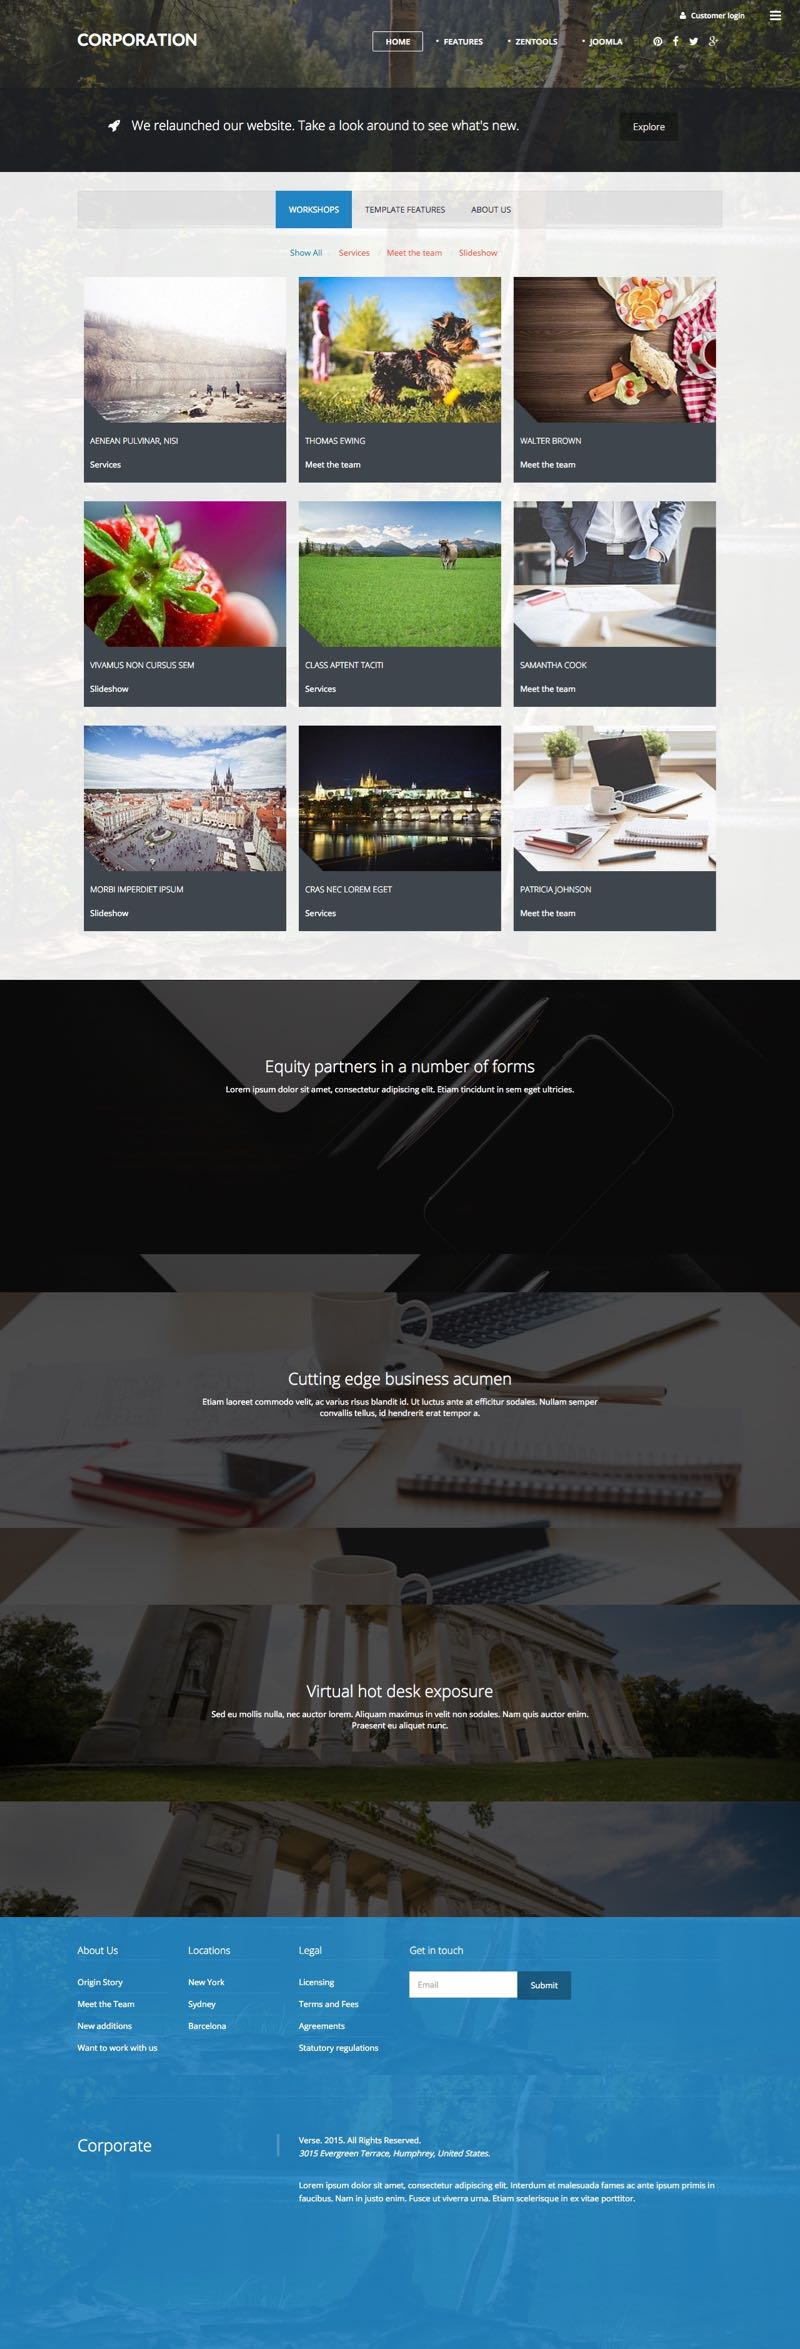 Corporation Joomla 3.x High Speed Lightweight Template